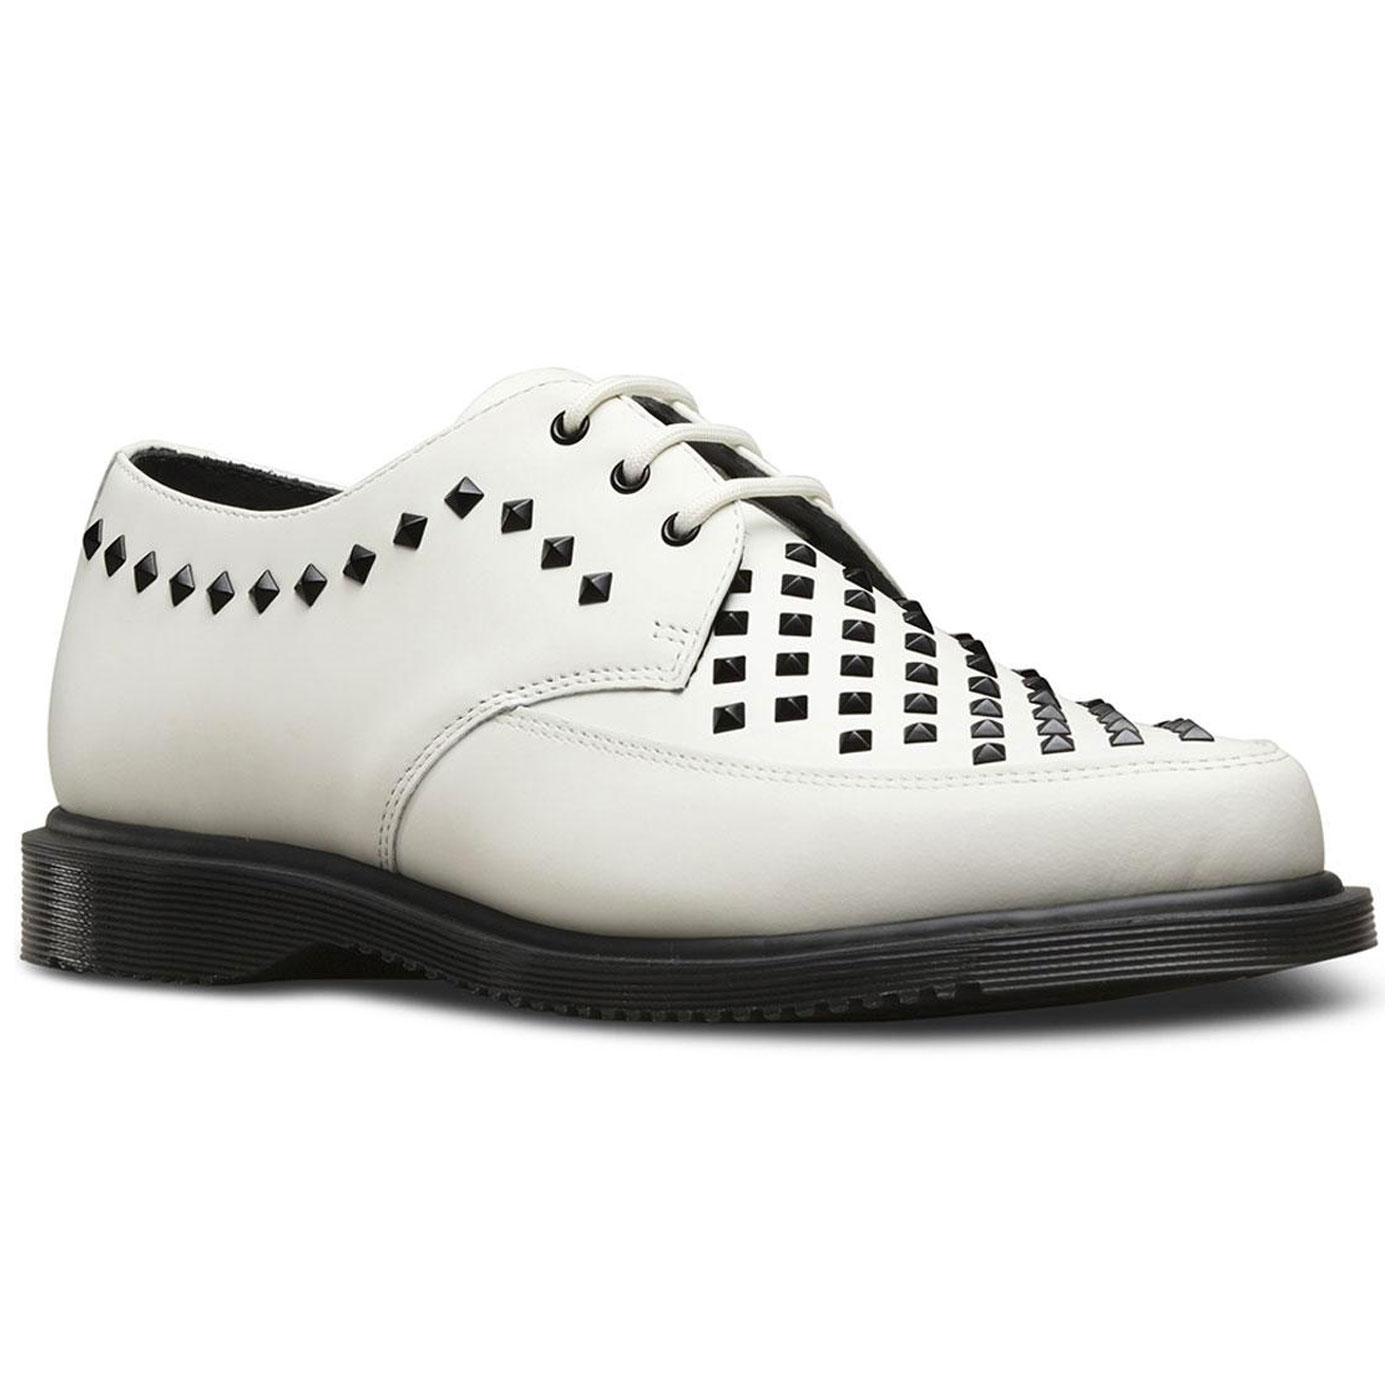 Willis DR MARTENS MEN'S 50s Smooth Stud Creepers W